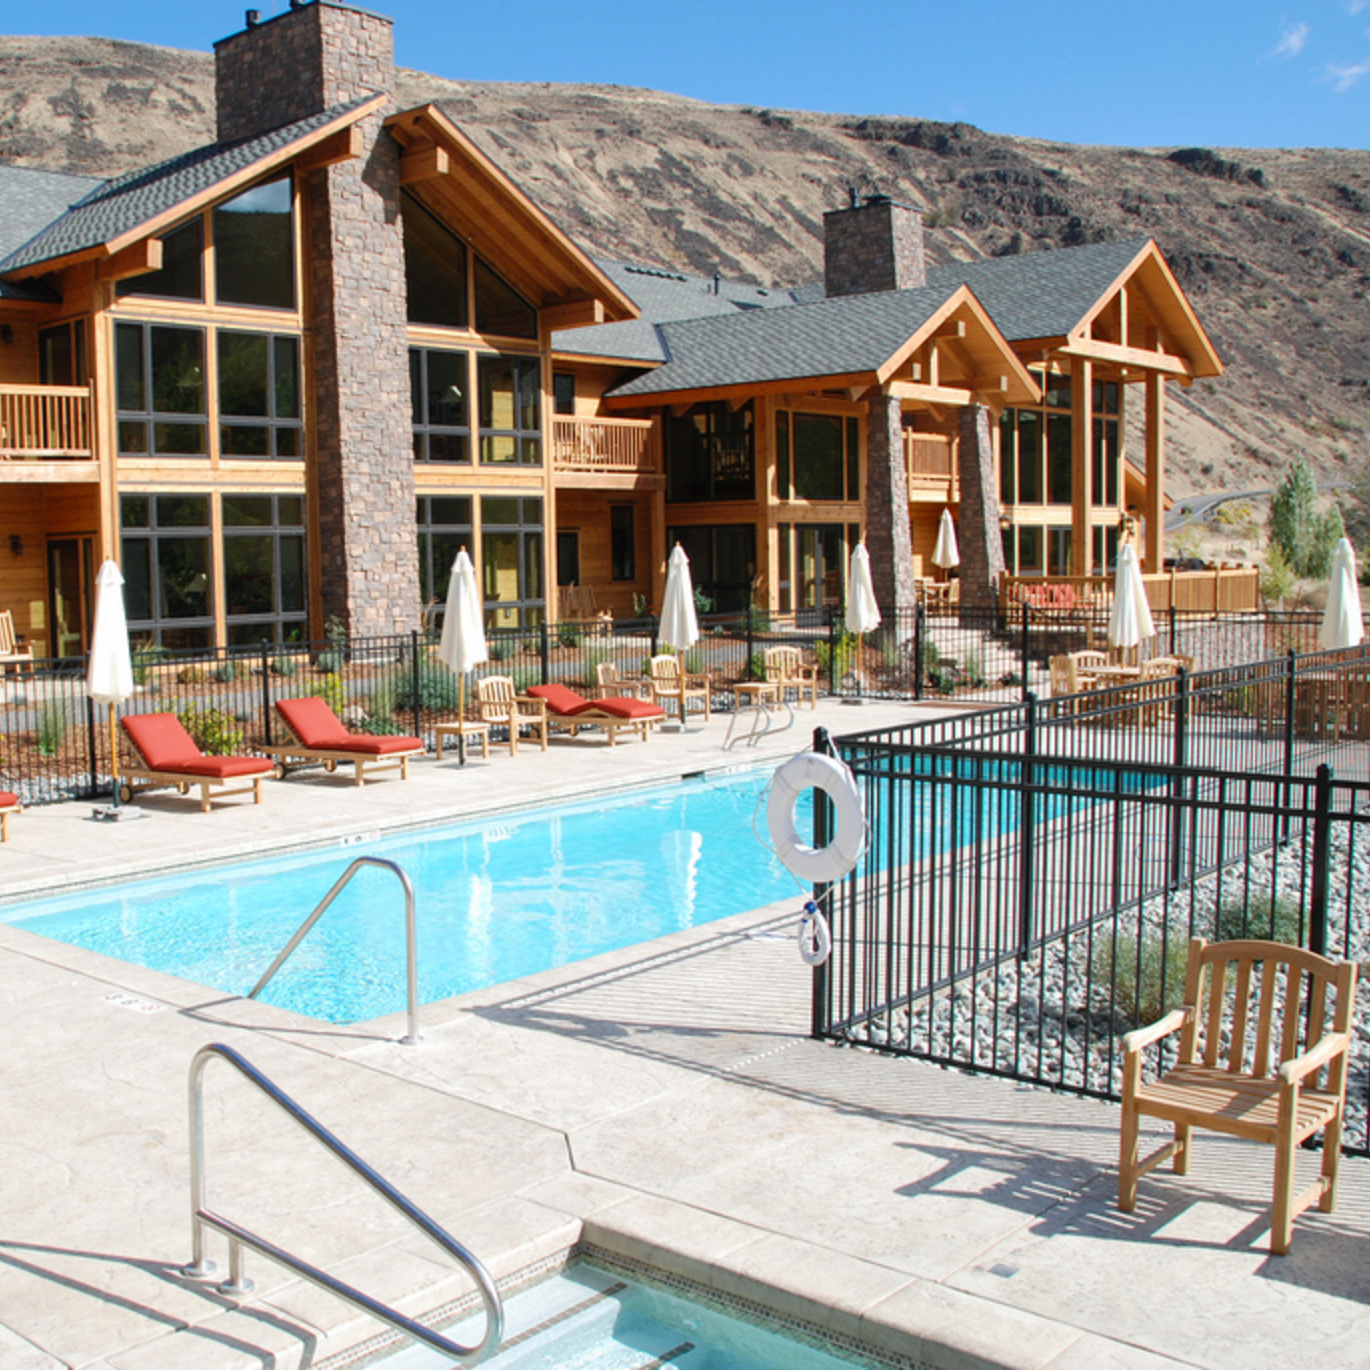 Canyon River Ranch - Lodging, Conferences, EntertainmentHub for outdoor recreation. Host an event or enjoy a concert, relax and dine well while the Yakima River lulls you to sleep each night. Just a short jaunt from downtown Ellensburg.14700 Canyon Rd, Ellensburg| (509) 933-2100CanyonRiver.net